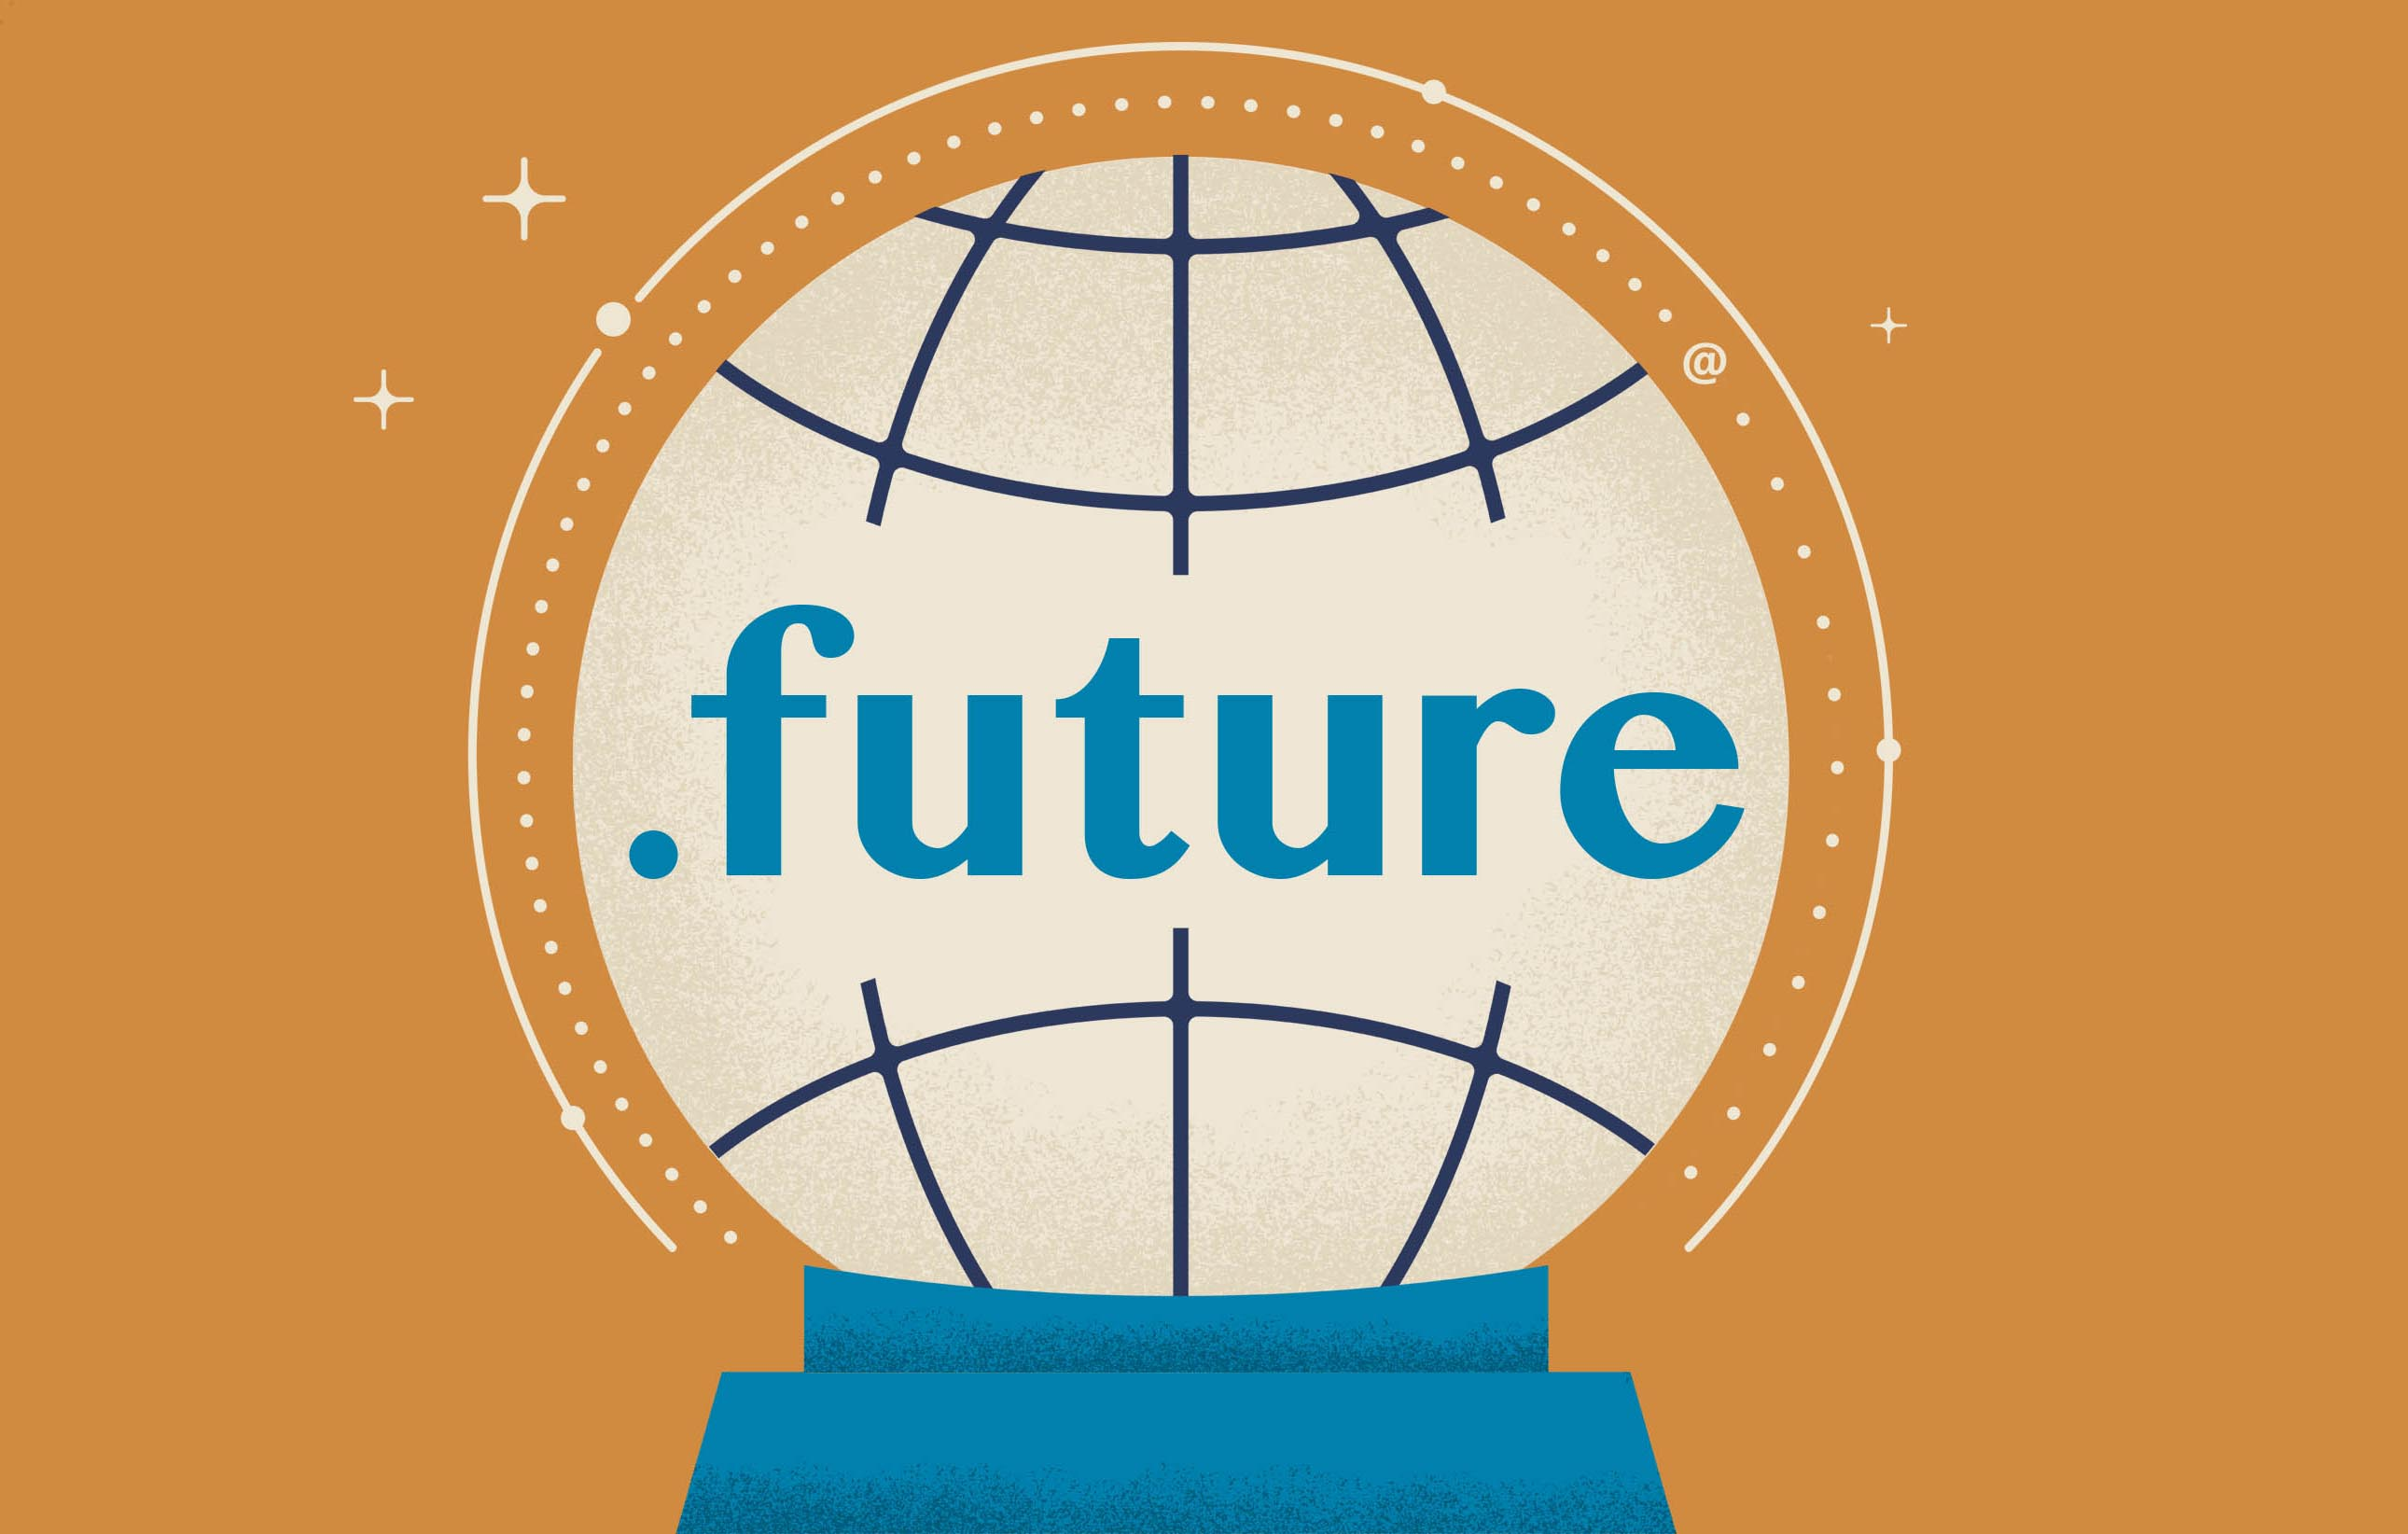 "The text "".future"" printed over a globe"